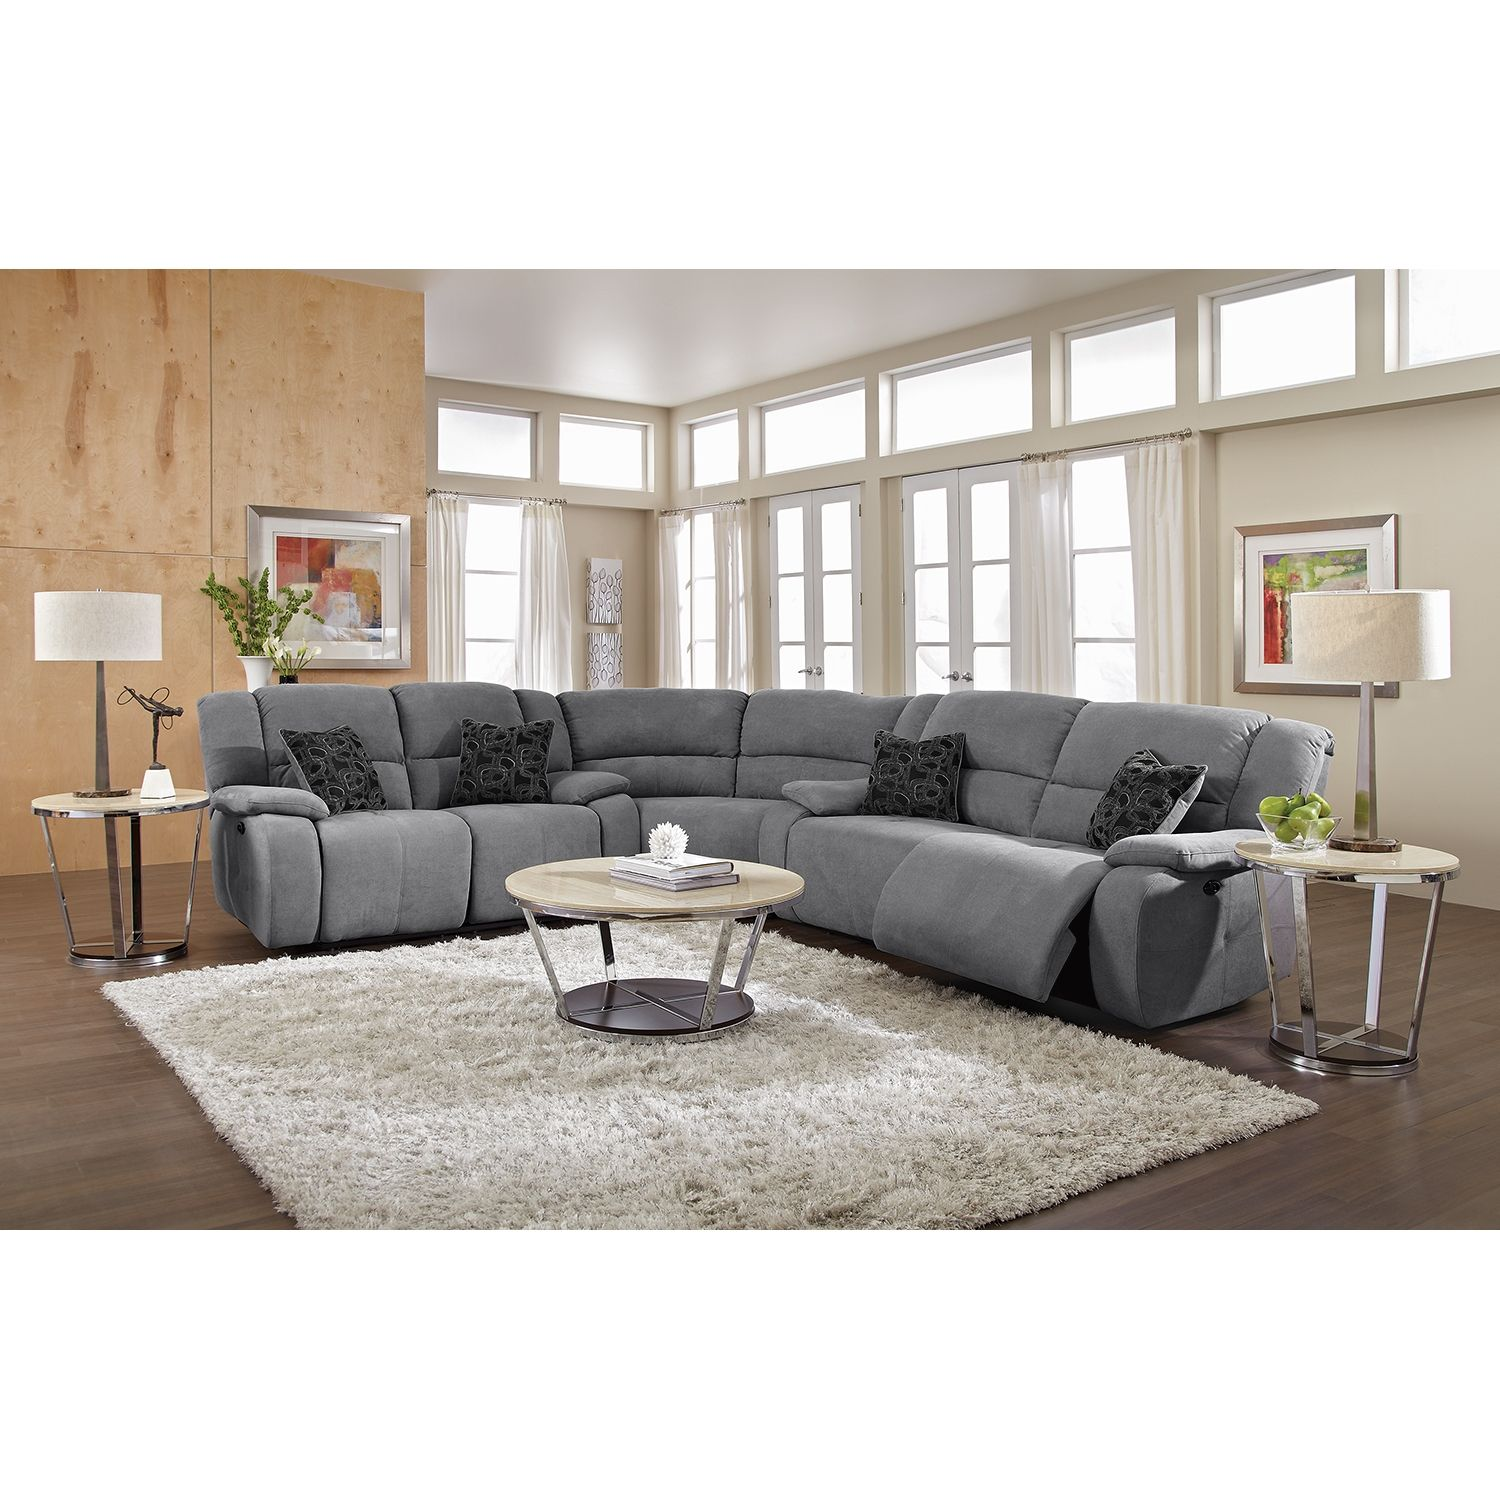 Love This Couch Gray is awesome Future Living Room